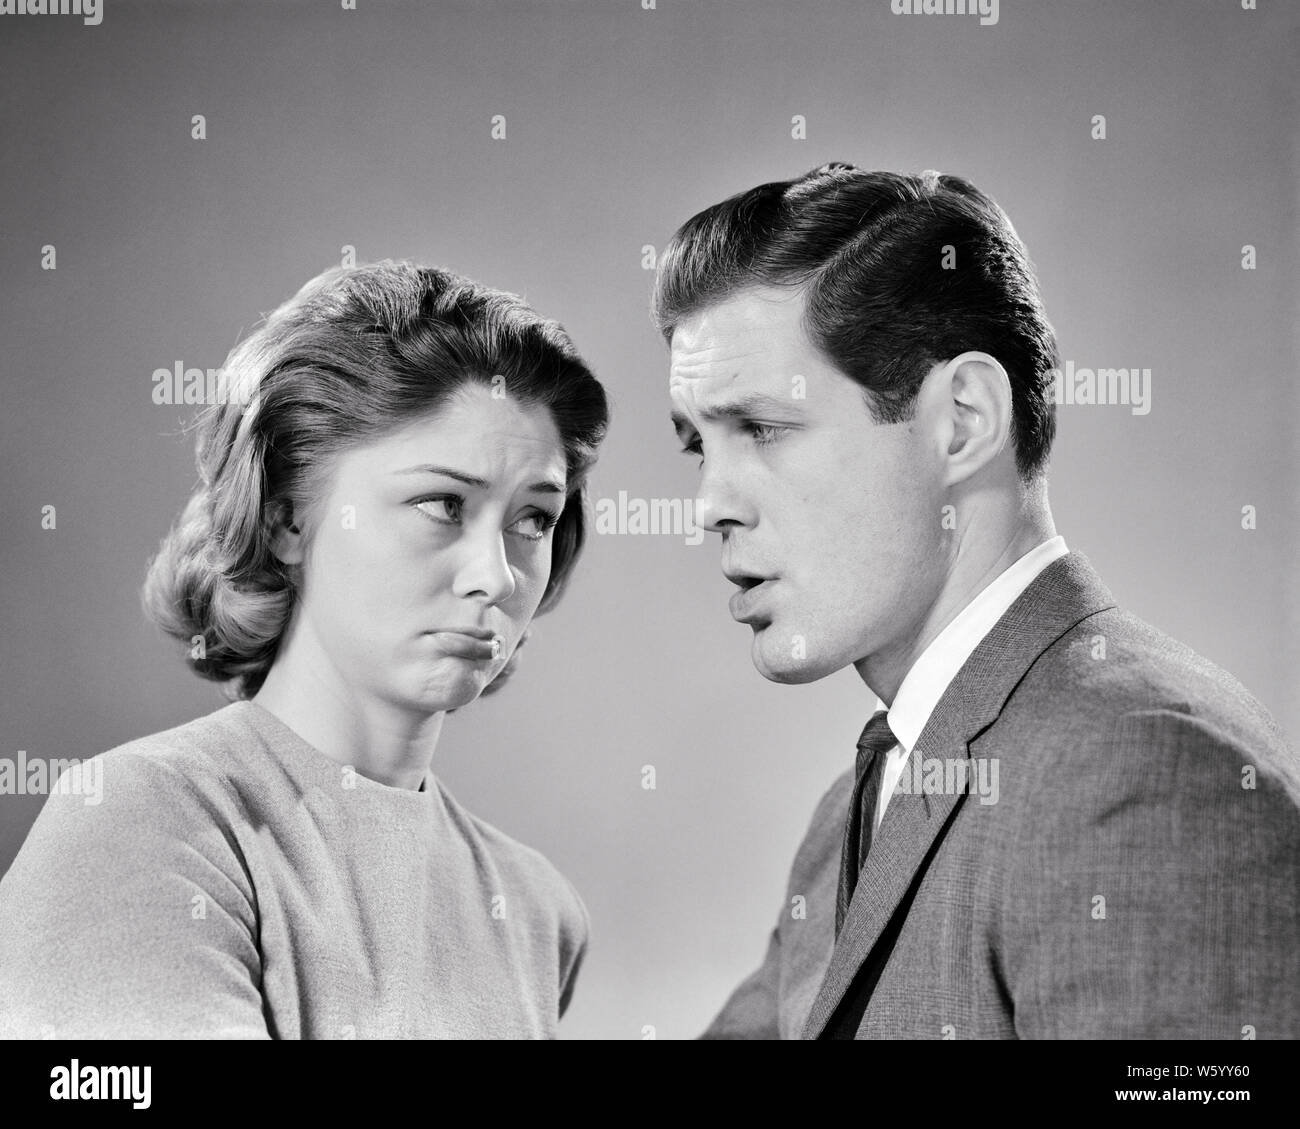 1960s young couple looking at one another with angry mad facial expressions - s13057 HAR001 HARS OLD FASHION 1 FACIAL ANGER COMMUNICATION YOUNG ADULT SAFETY LIFESTYLE ANNOYED FEMALES MARRIED STUDIO SHOT MOODY SPOUSE HUSBANDS HOME LIFE COPY SPACE FRIENDSHIP HALF-LENGTH LADIES MARRIAGE PERSONS CARING MALES EXPRESSIONS TROUBLED B&W PARTNER SADNESS SUIT AND TIE DISAGREEING DISTRESSED POUTING IRATE DISAGREEMENT HURTFUL AT DISAGREE HURT MOOD CONNECTION CONCEPTUAL GLUM SPAT STYLISH DISPLEASURE HOSTILITY NEWLYWED PETULANT ANNOYANCE ANOTHER EMOTION EMOTIONAL IRRITATED MISERABLE QUARREL SQUABBLE WIVES Stock Photo